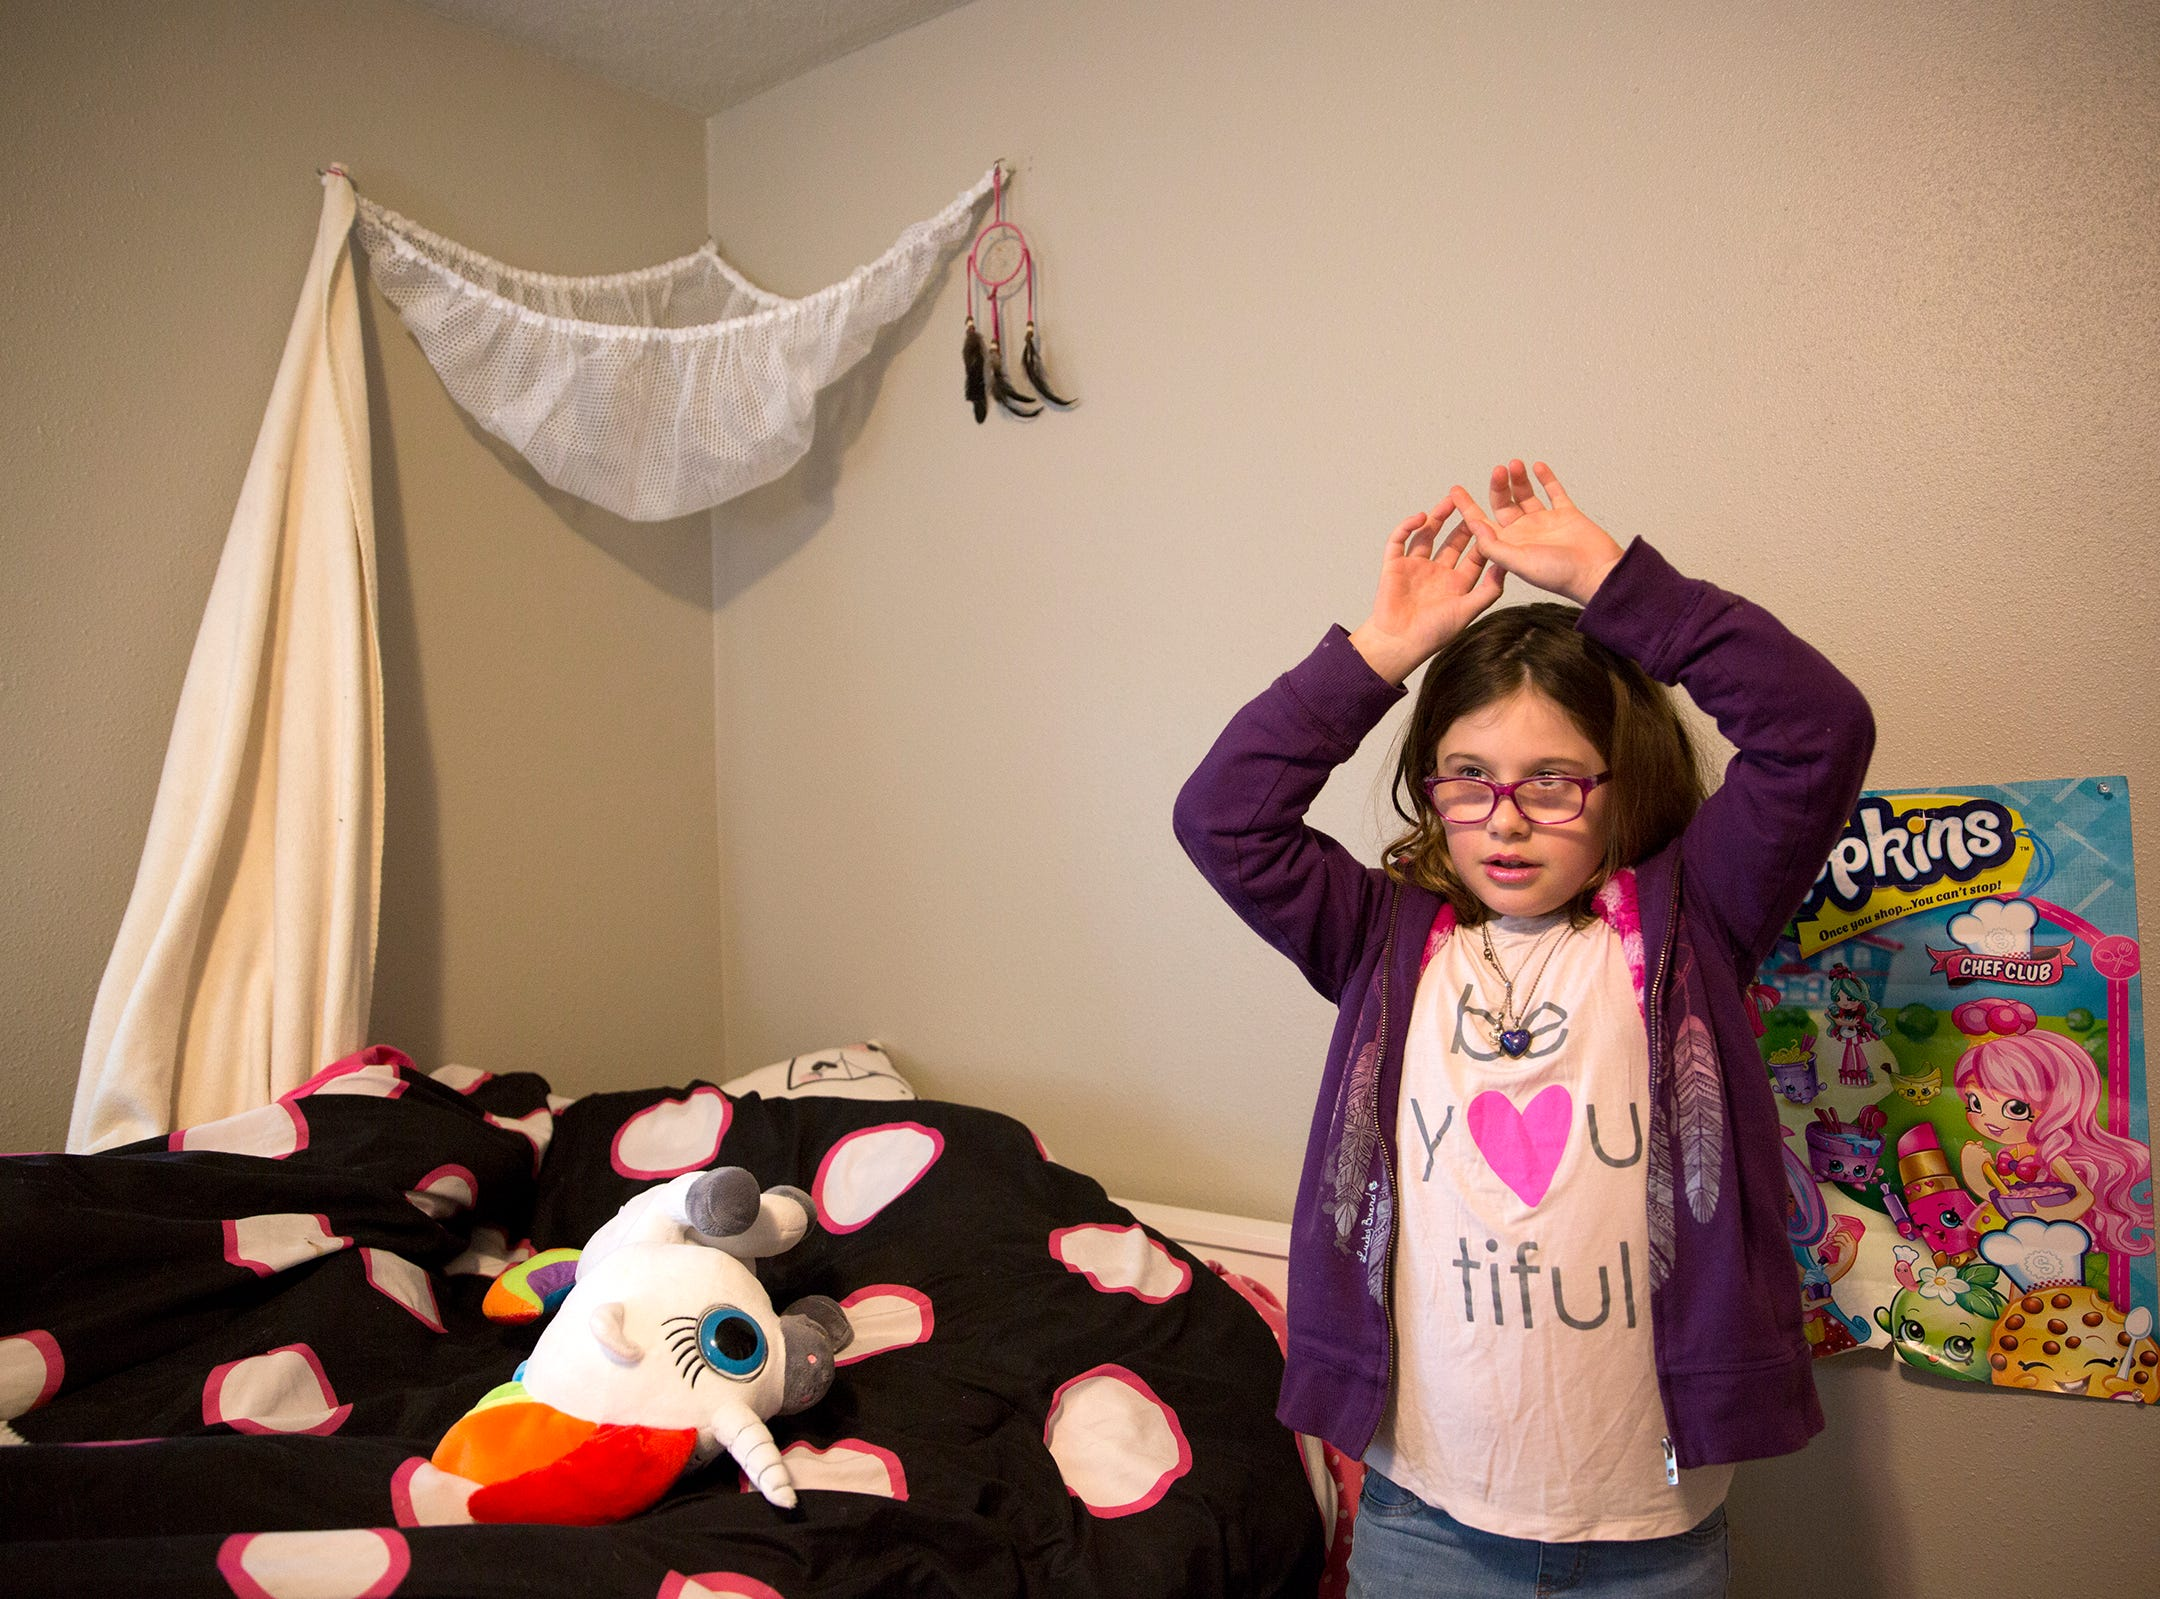 Haley Pollman gives a tour of her room at her home in Salem on Saturday, Feb. 23, 2019. Her family started the foundation, Haley's Heroes, to raise money for a clinical trial to look for treatment for Batten disease which has caused her vision to deteriorate and will eventually effect her entire nervous system.